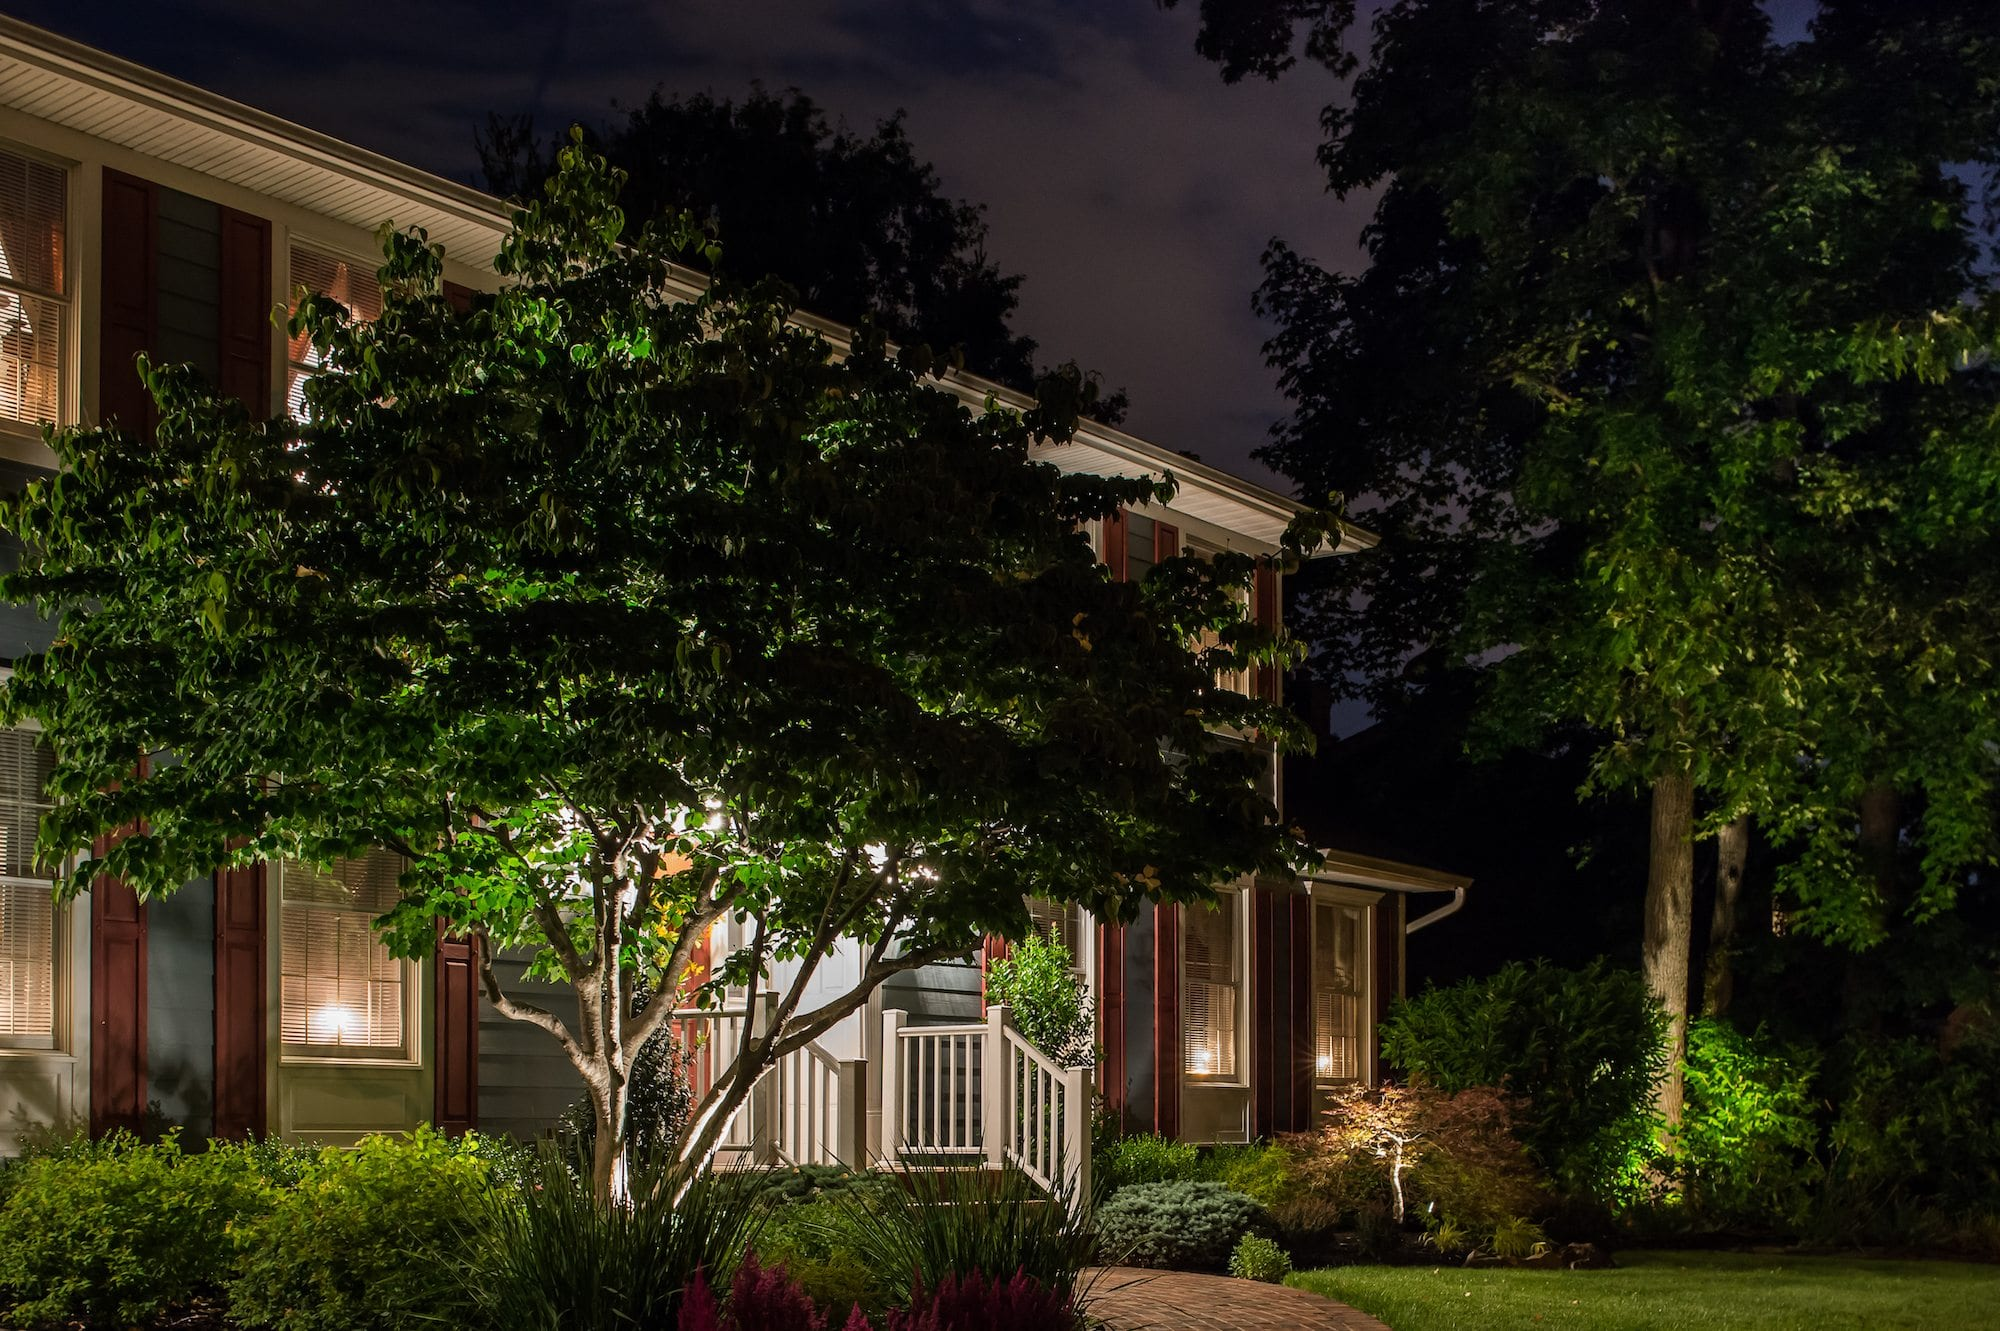 How Outdoor Lighting Can Improve Your Home in Morris County, NJ